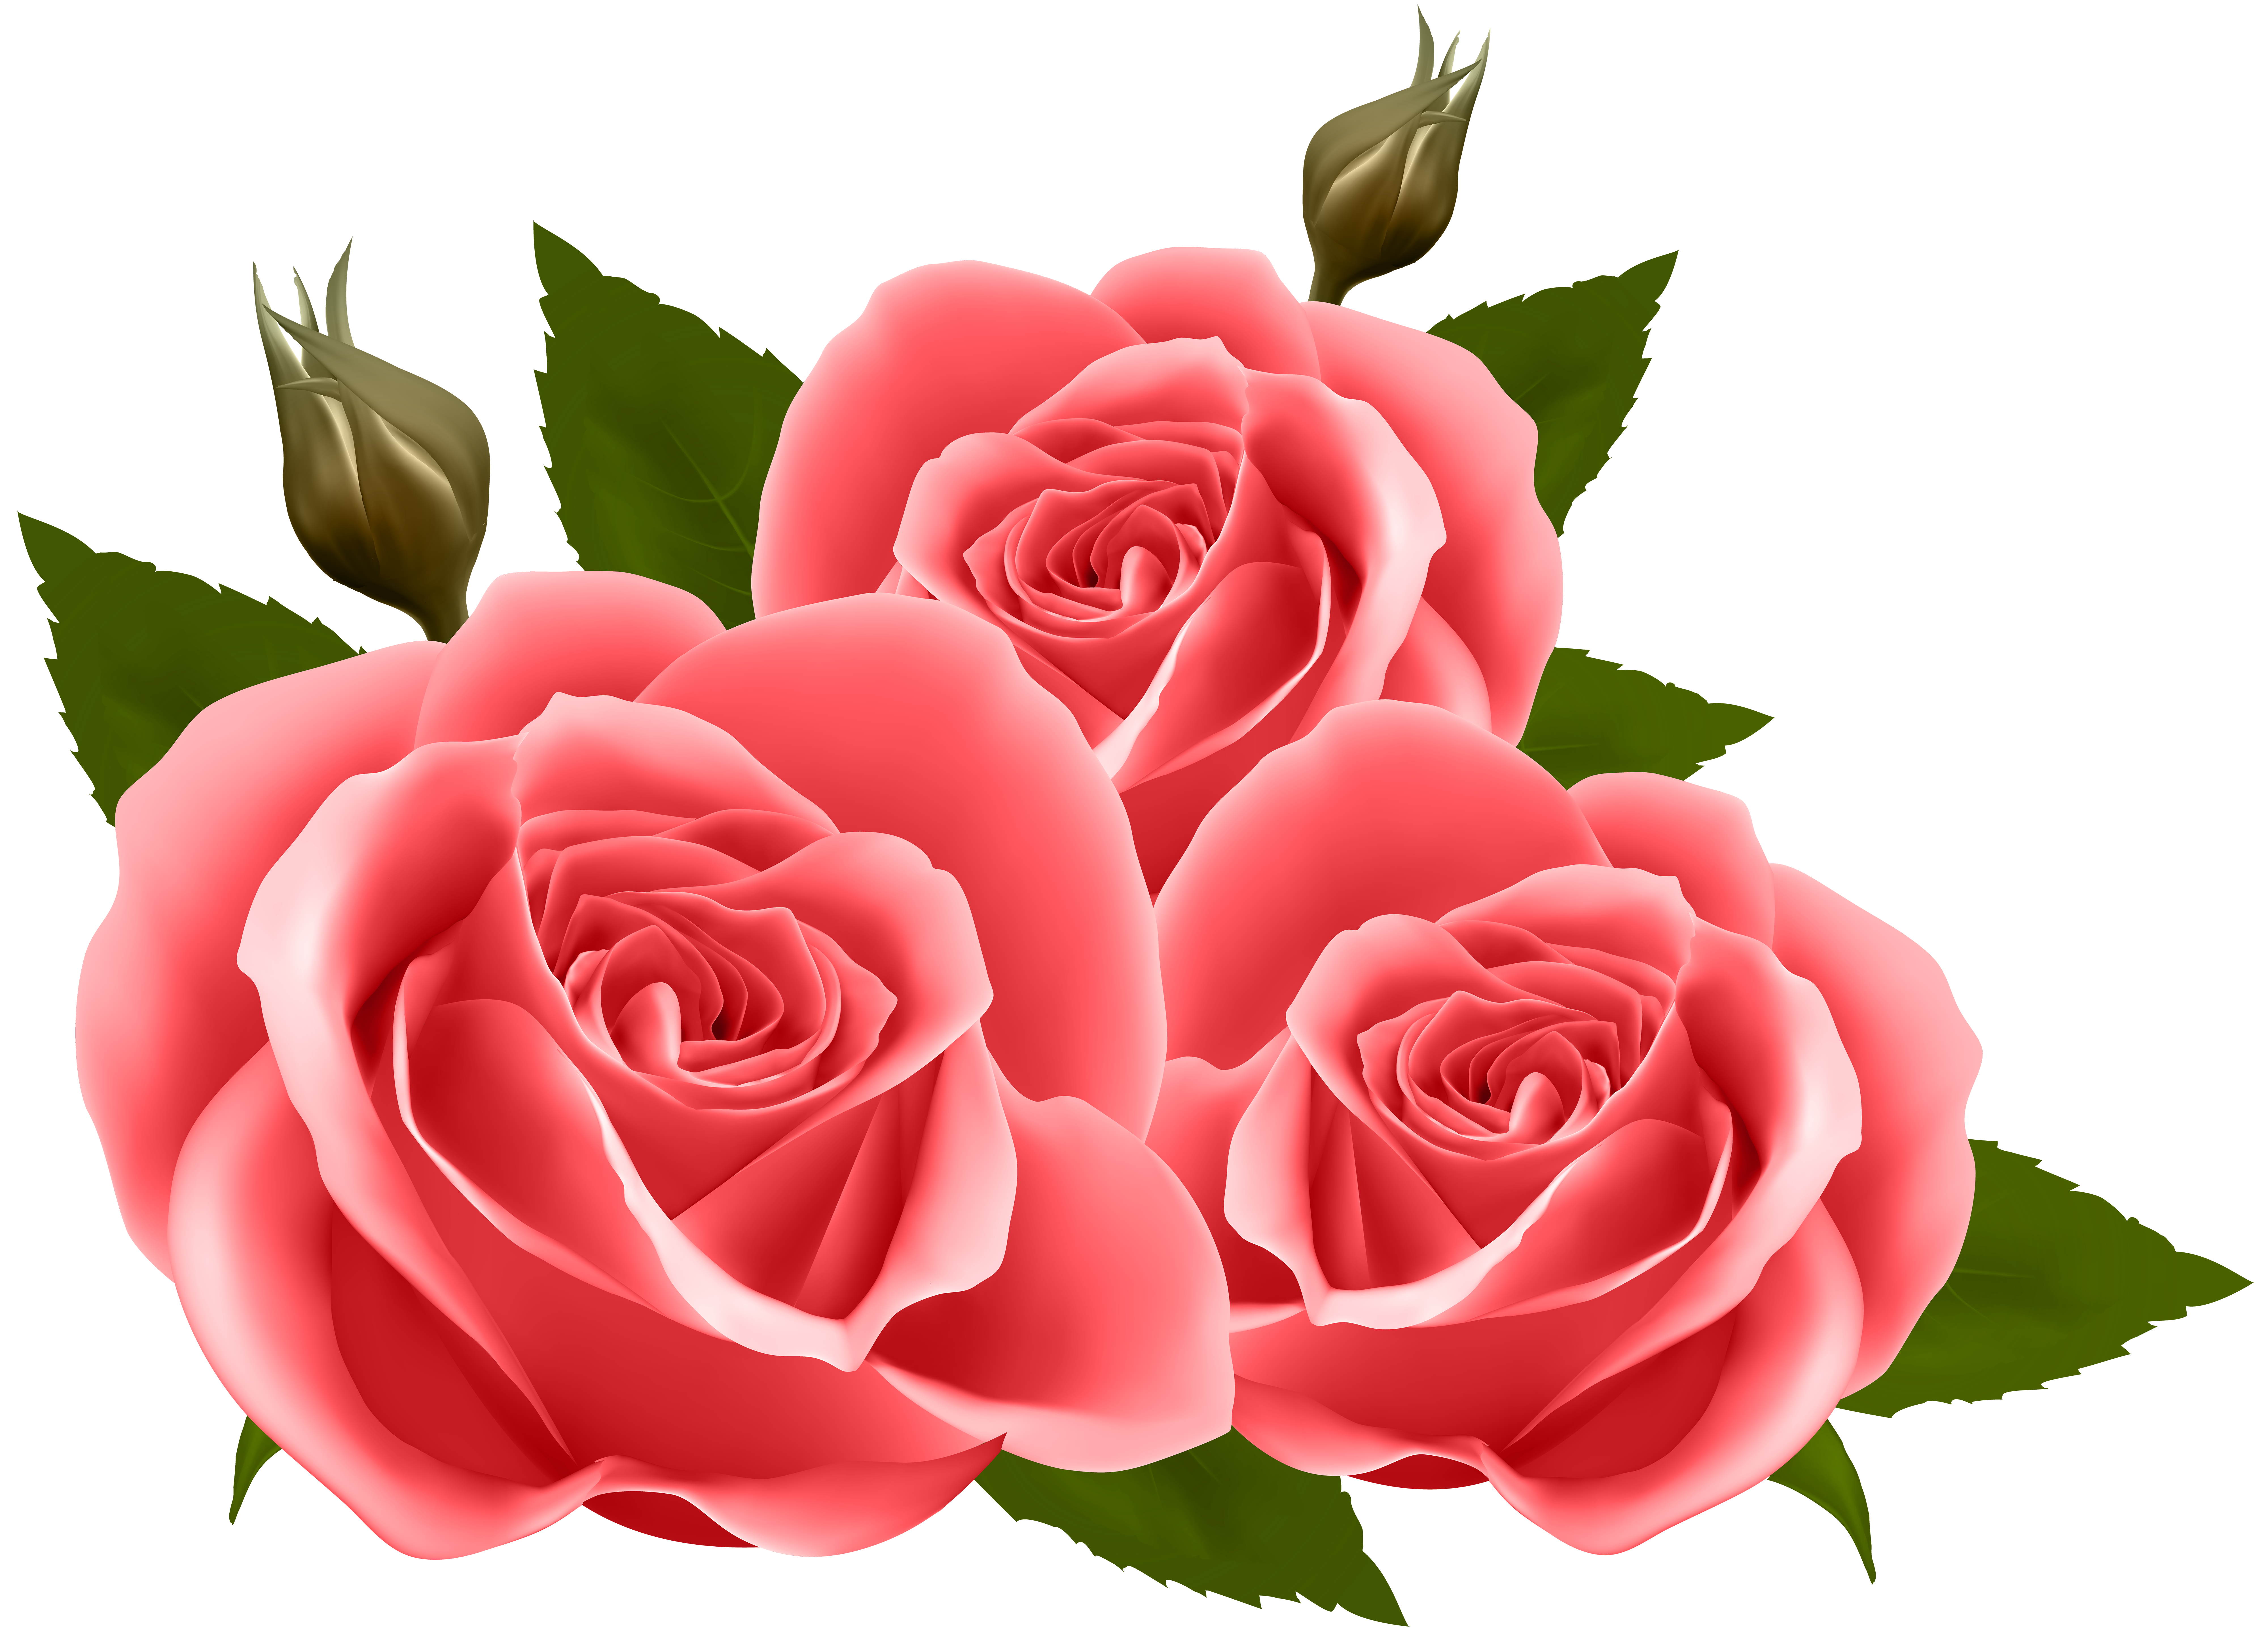 Roses png. Red clip art image